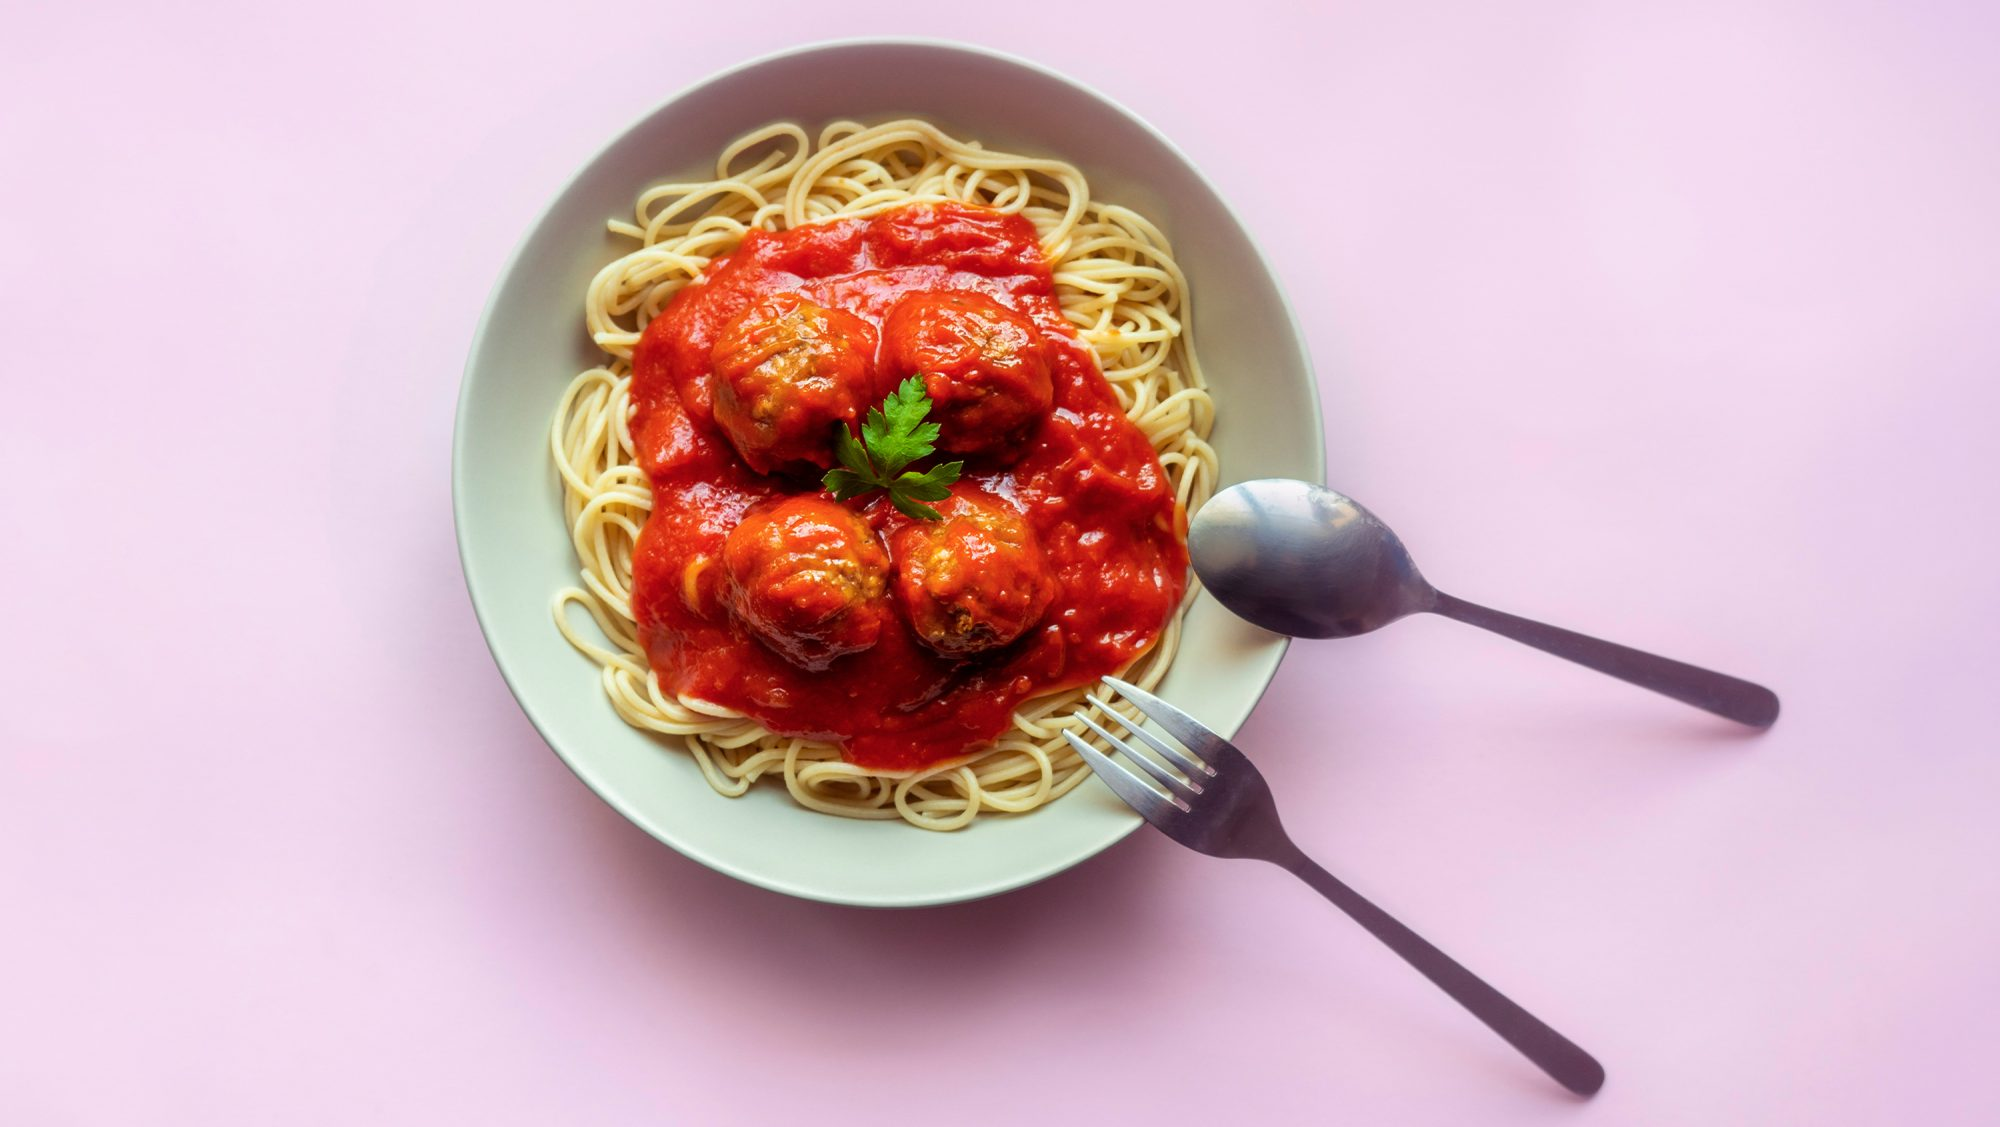 How-to-make-meatballs: meatballs and spaghetti